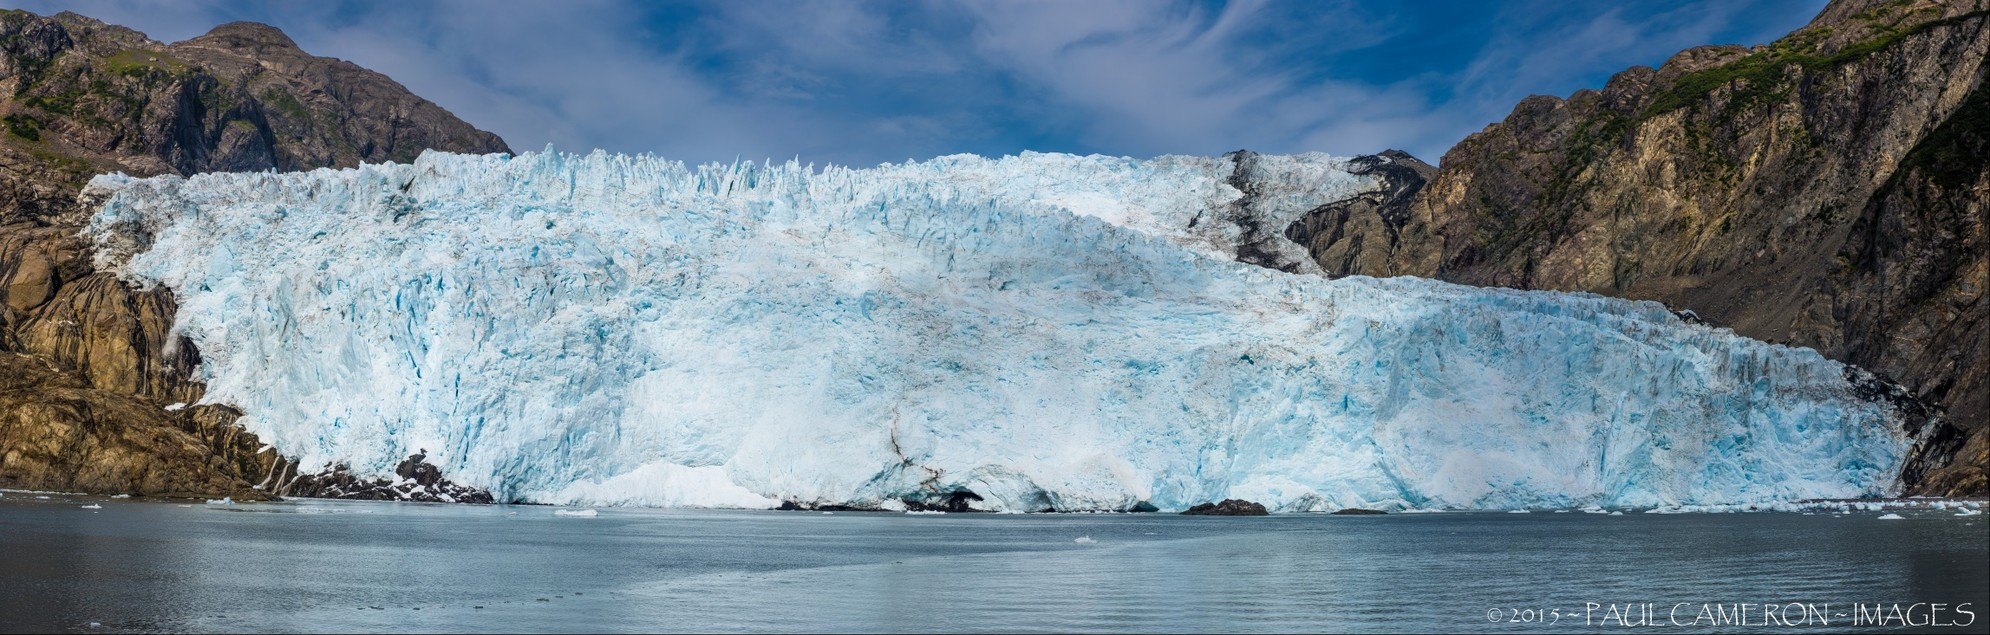 Holgate Glacier, Kenai Fjords National Park